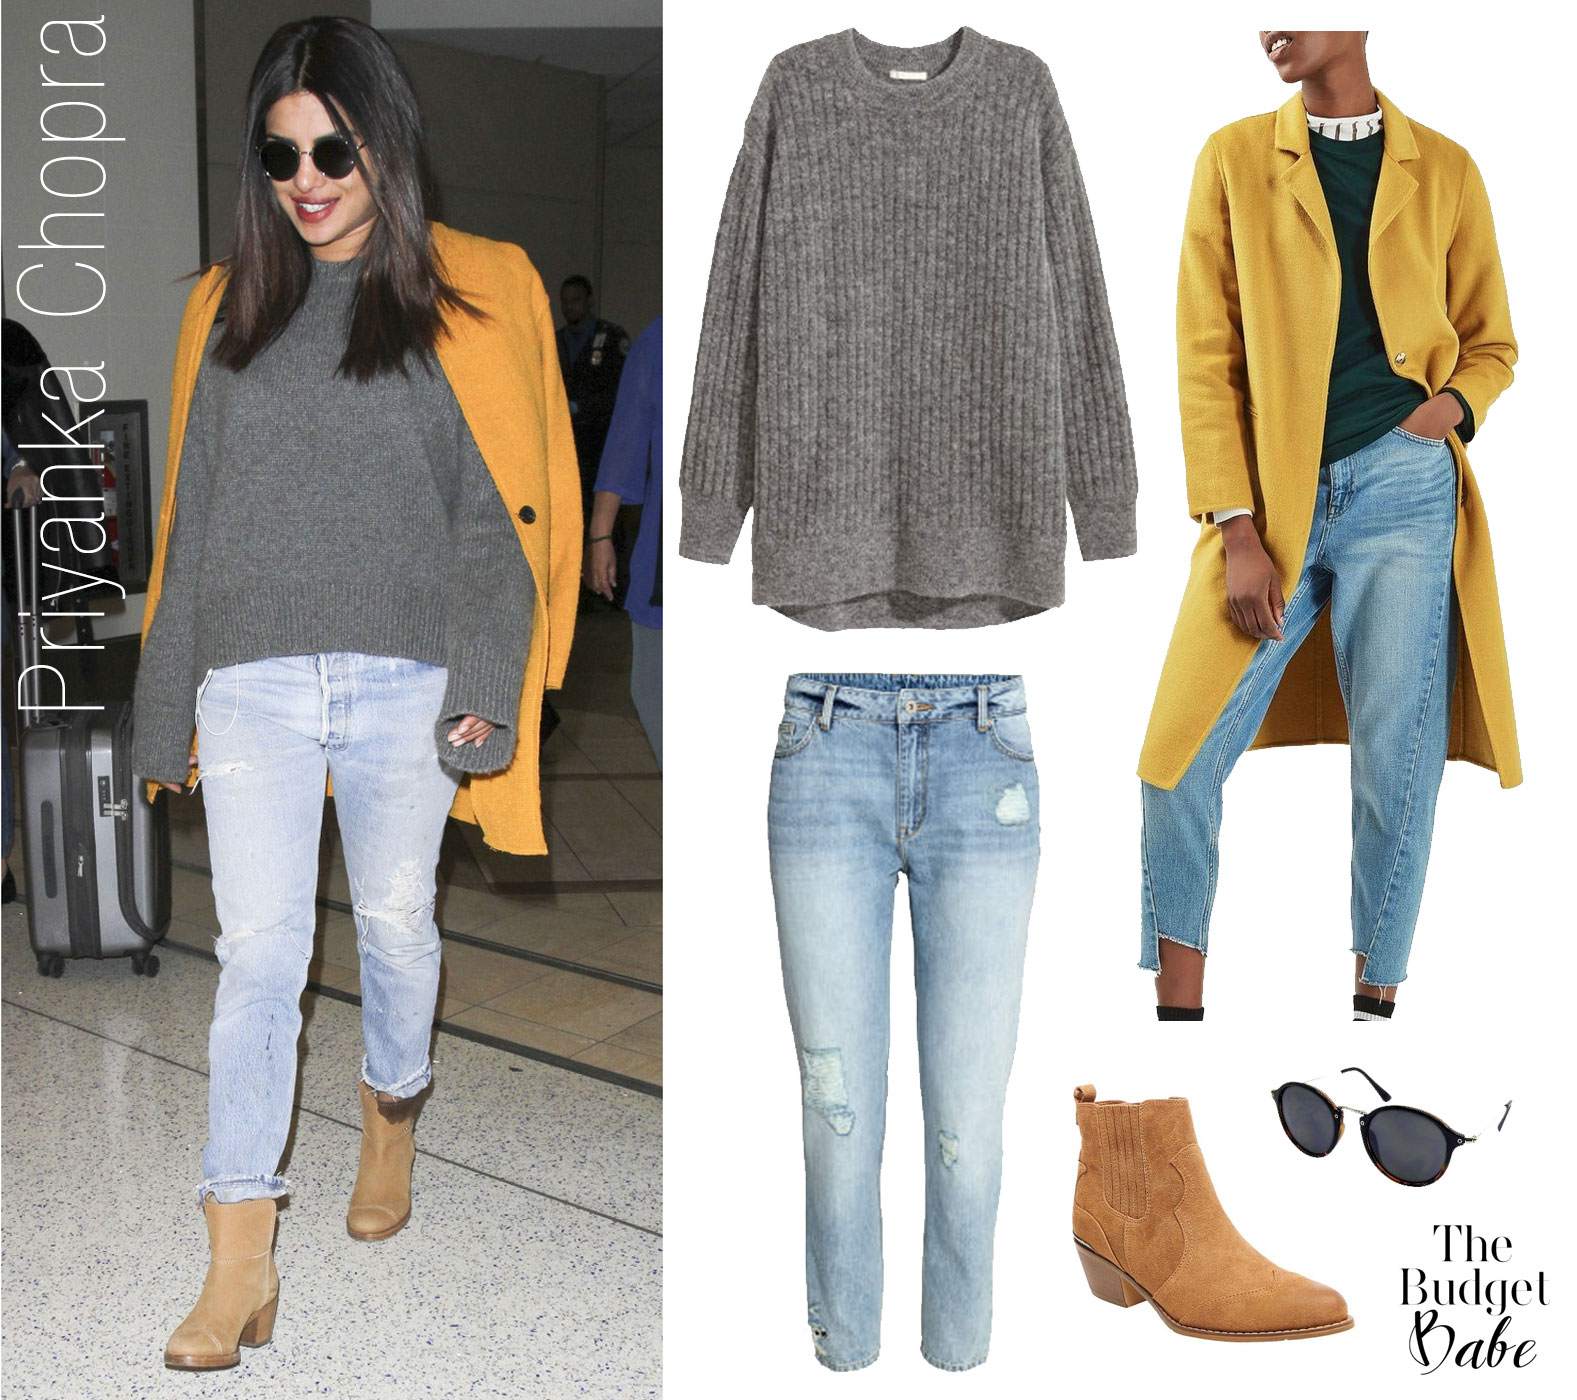 Priyanka Chopra's casual cool airport style